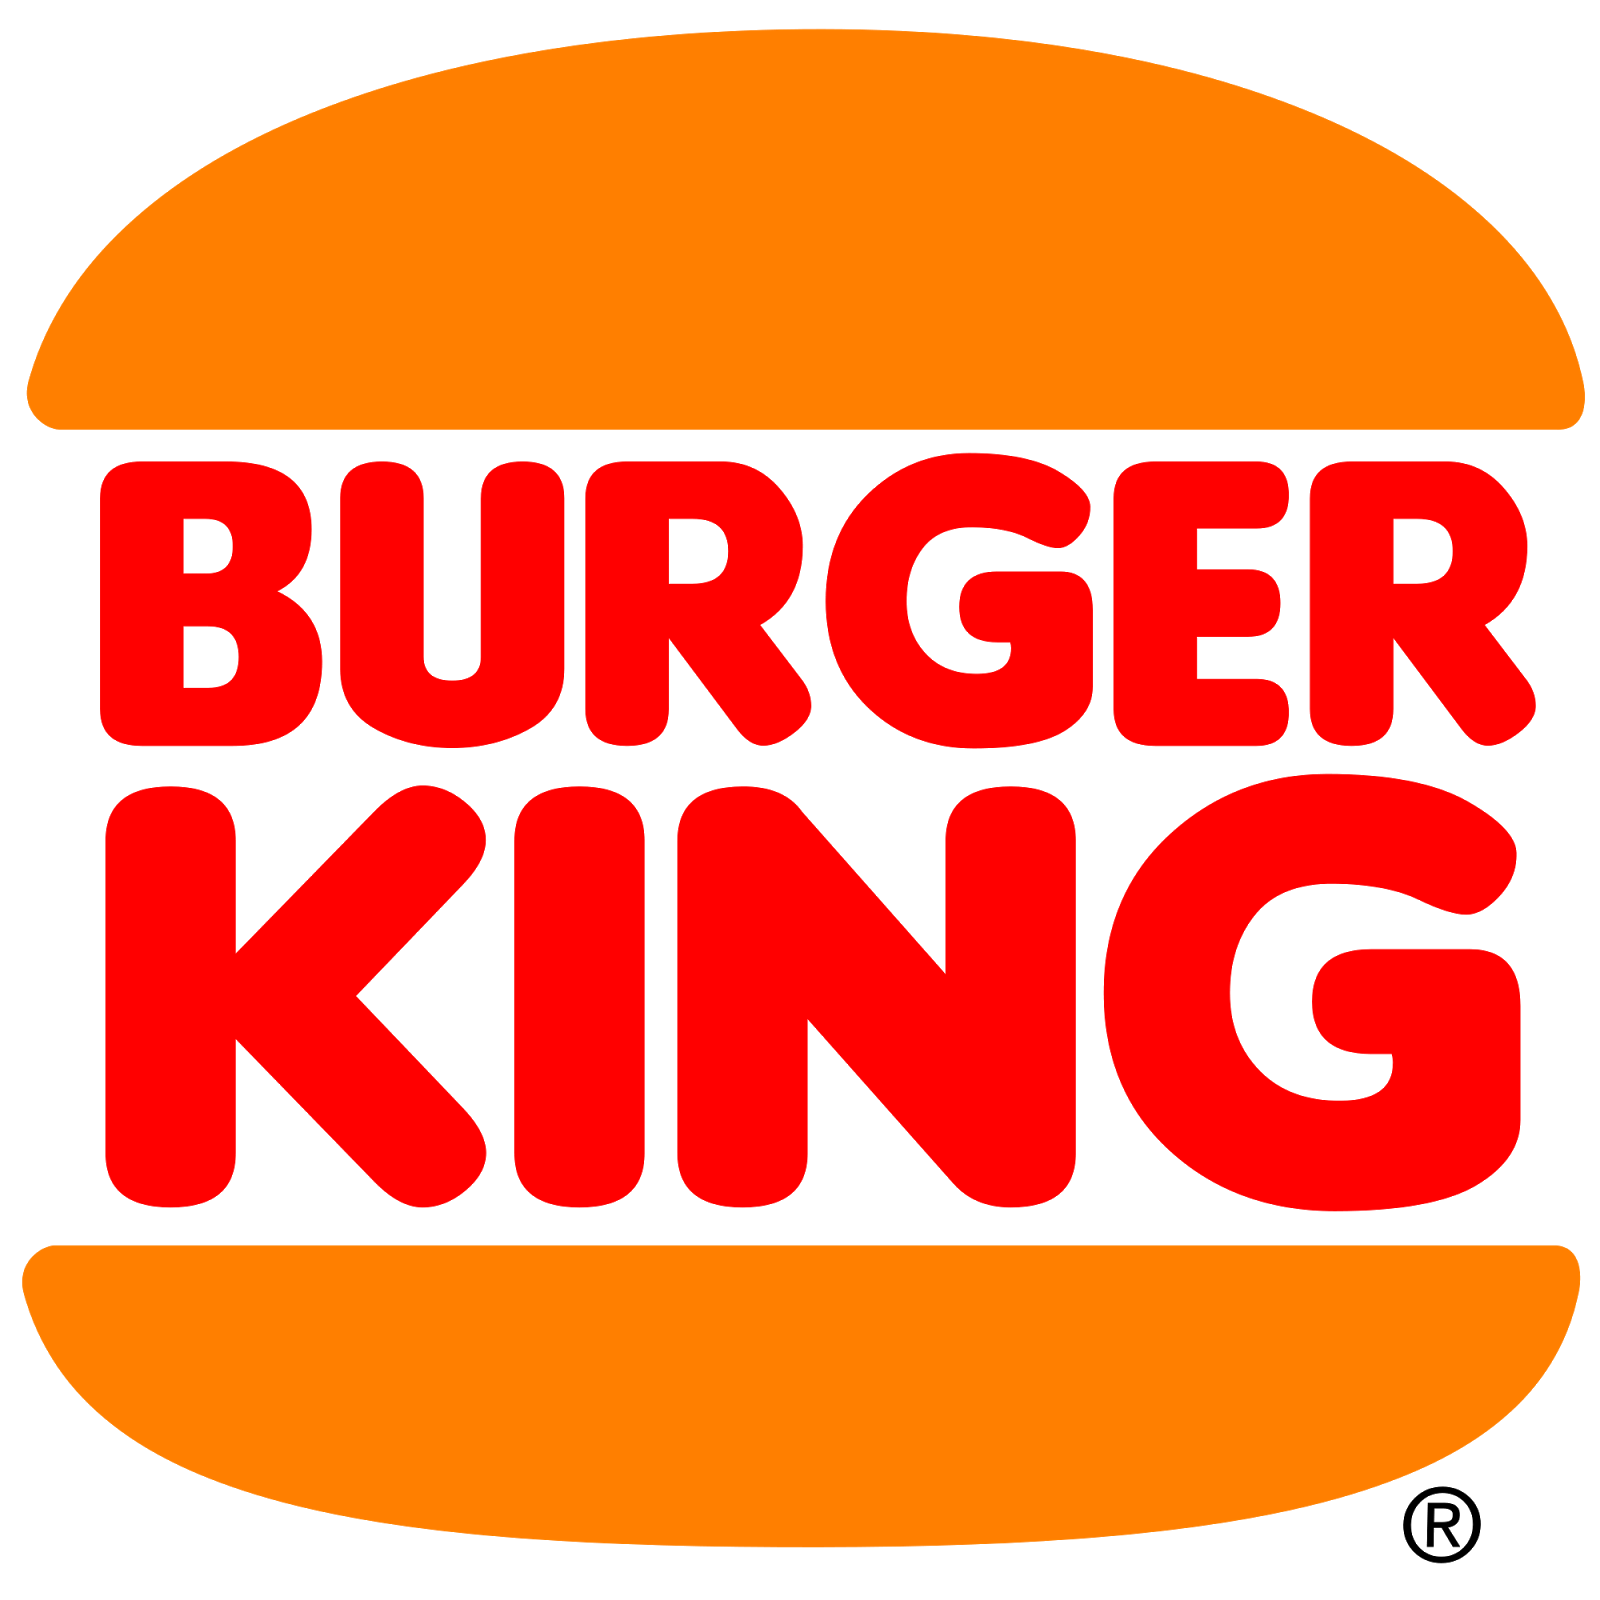 burgerking Scrawny short ugly fat weird 30% of school kids worldwide are bullied each year and bullying is the #1 act of violence against young people in america t.